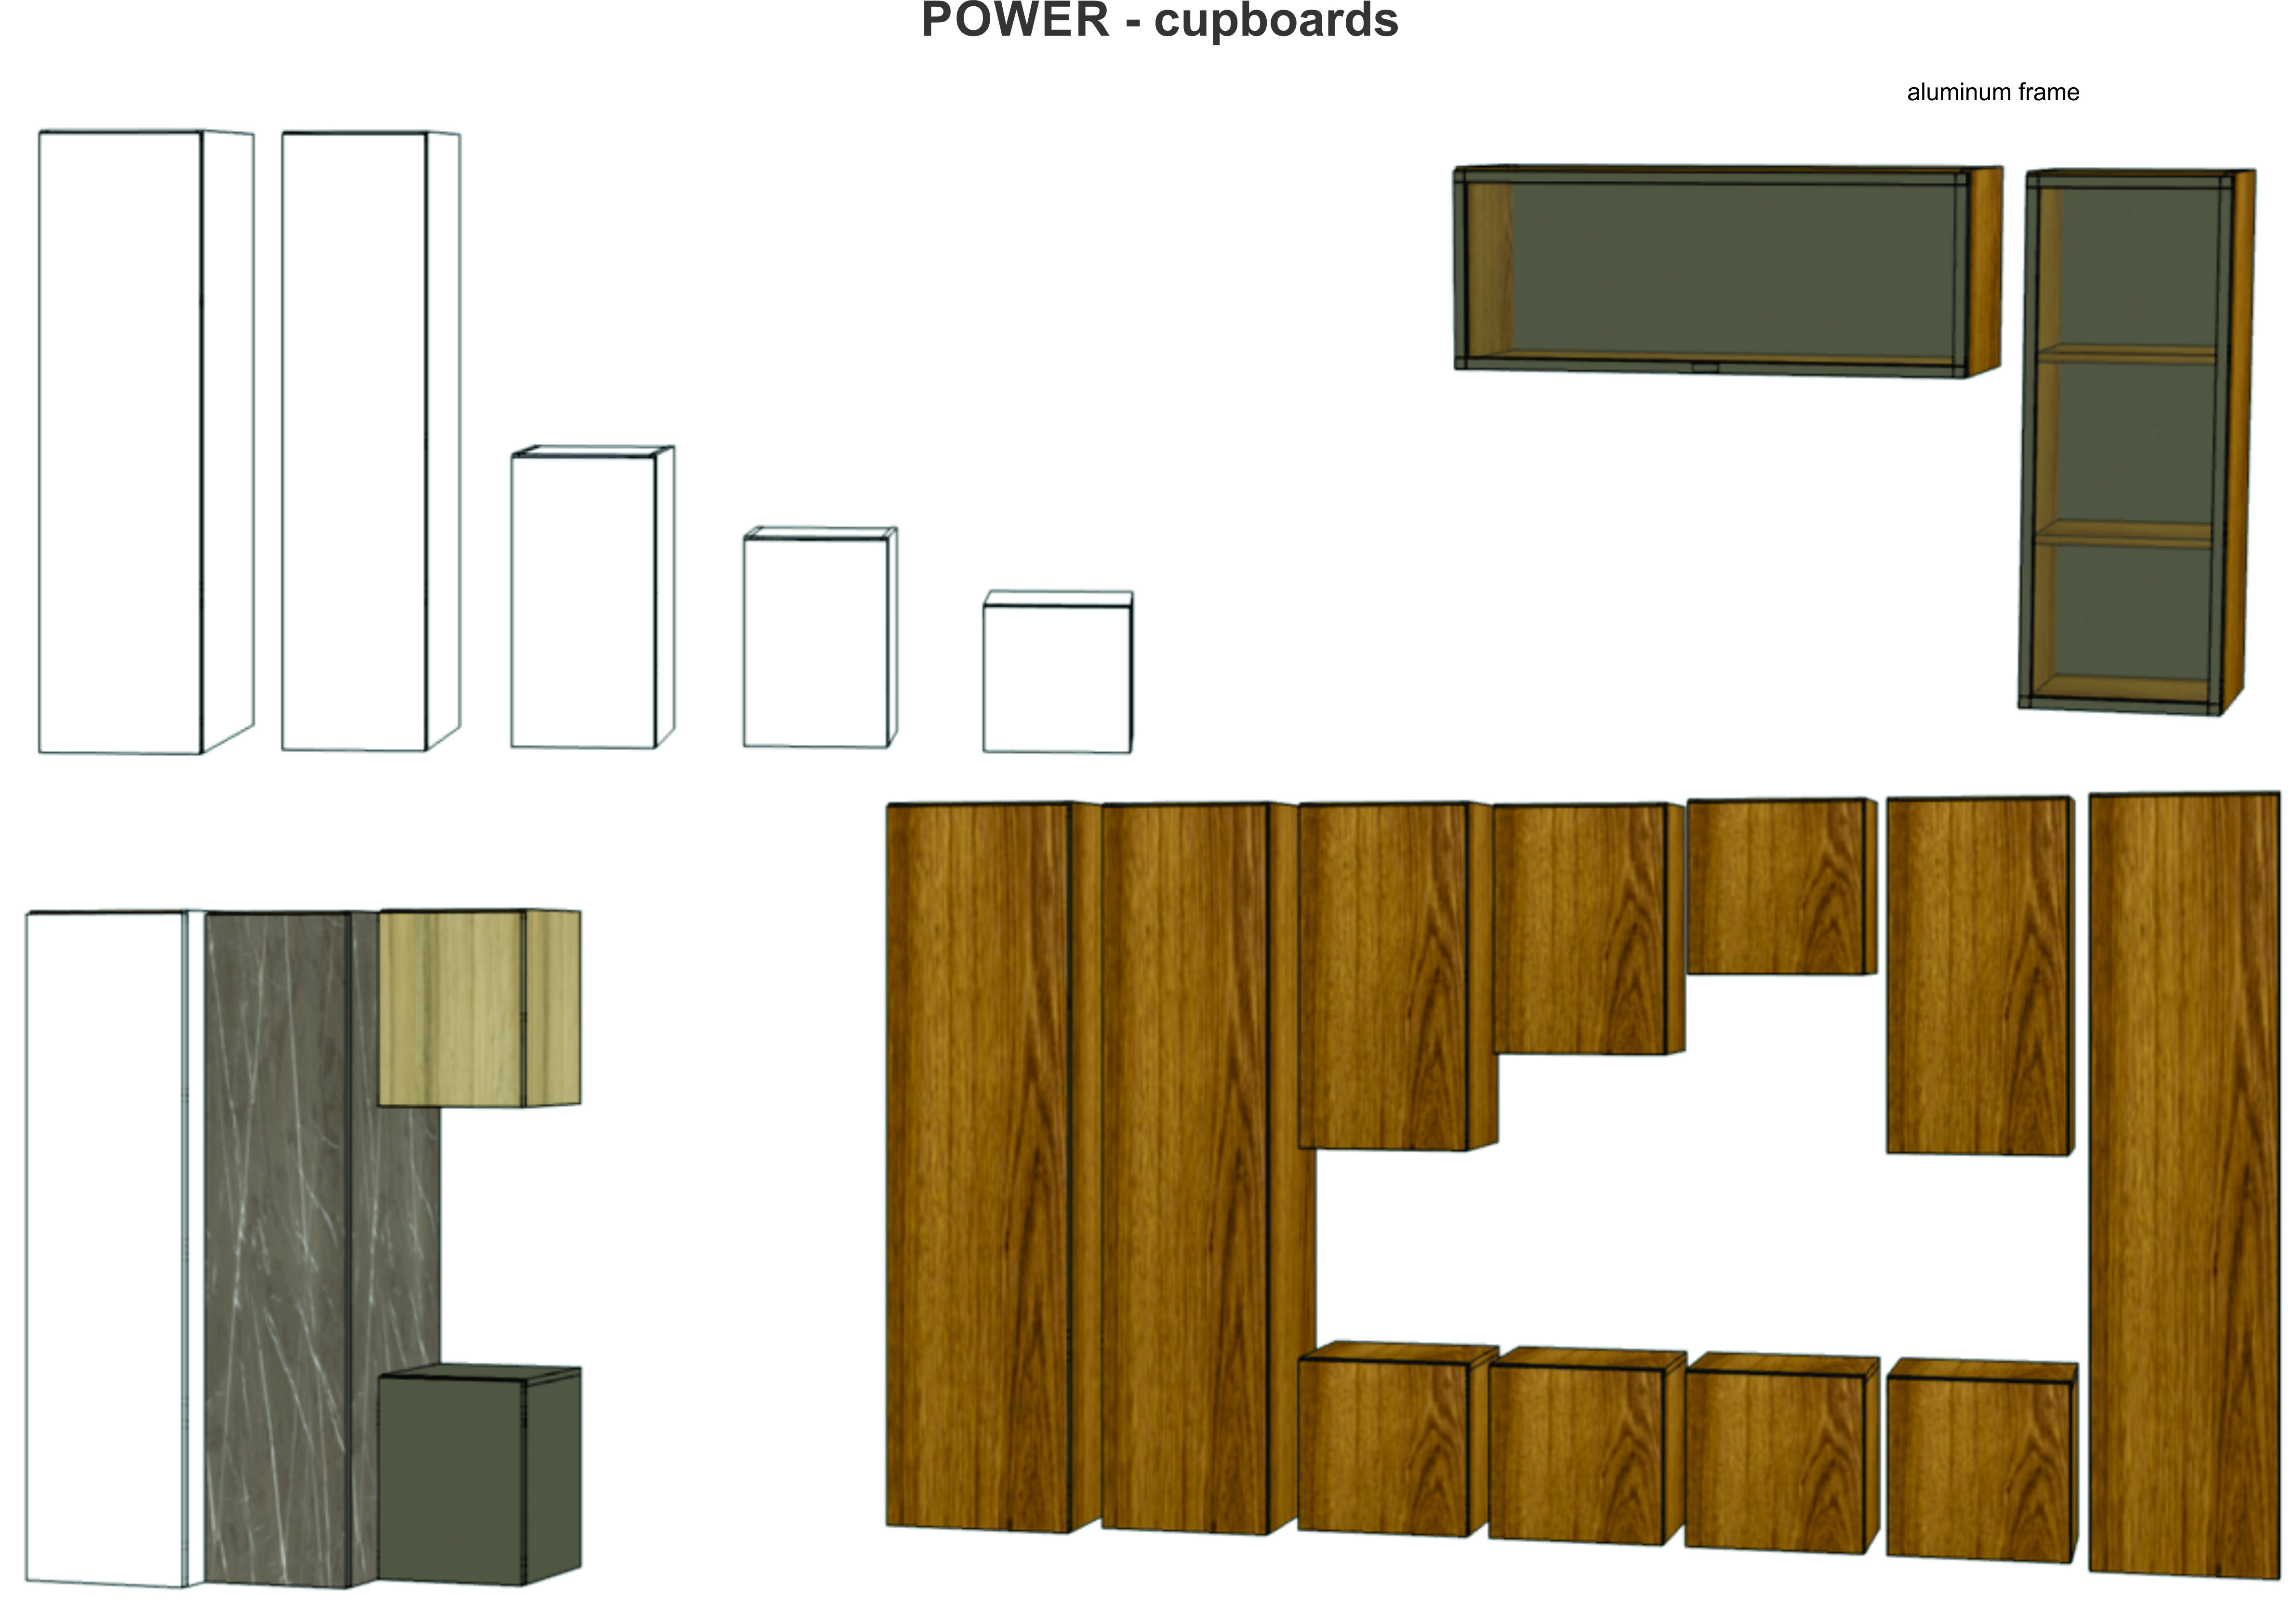 "Cupboards from Woost ""POWER"" collection. Different materials, textures and colours are available. Let us know what you think."